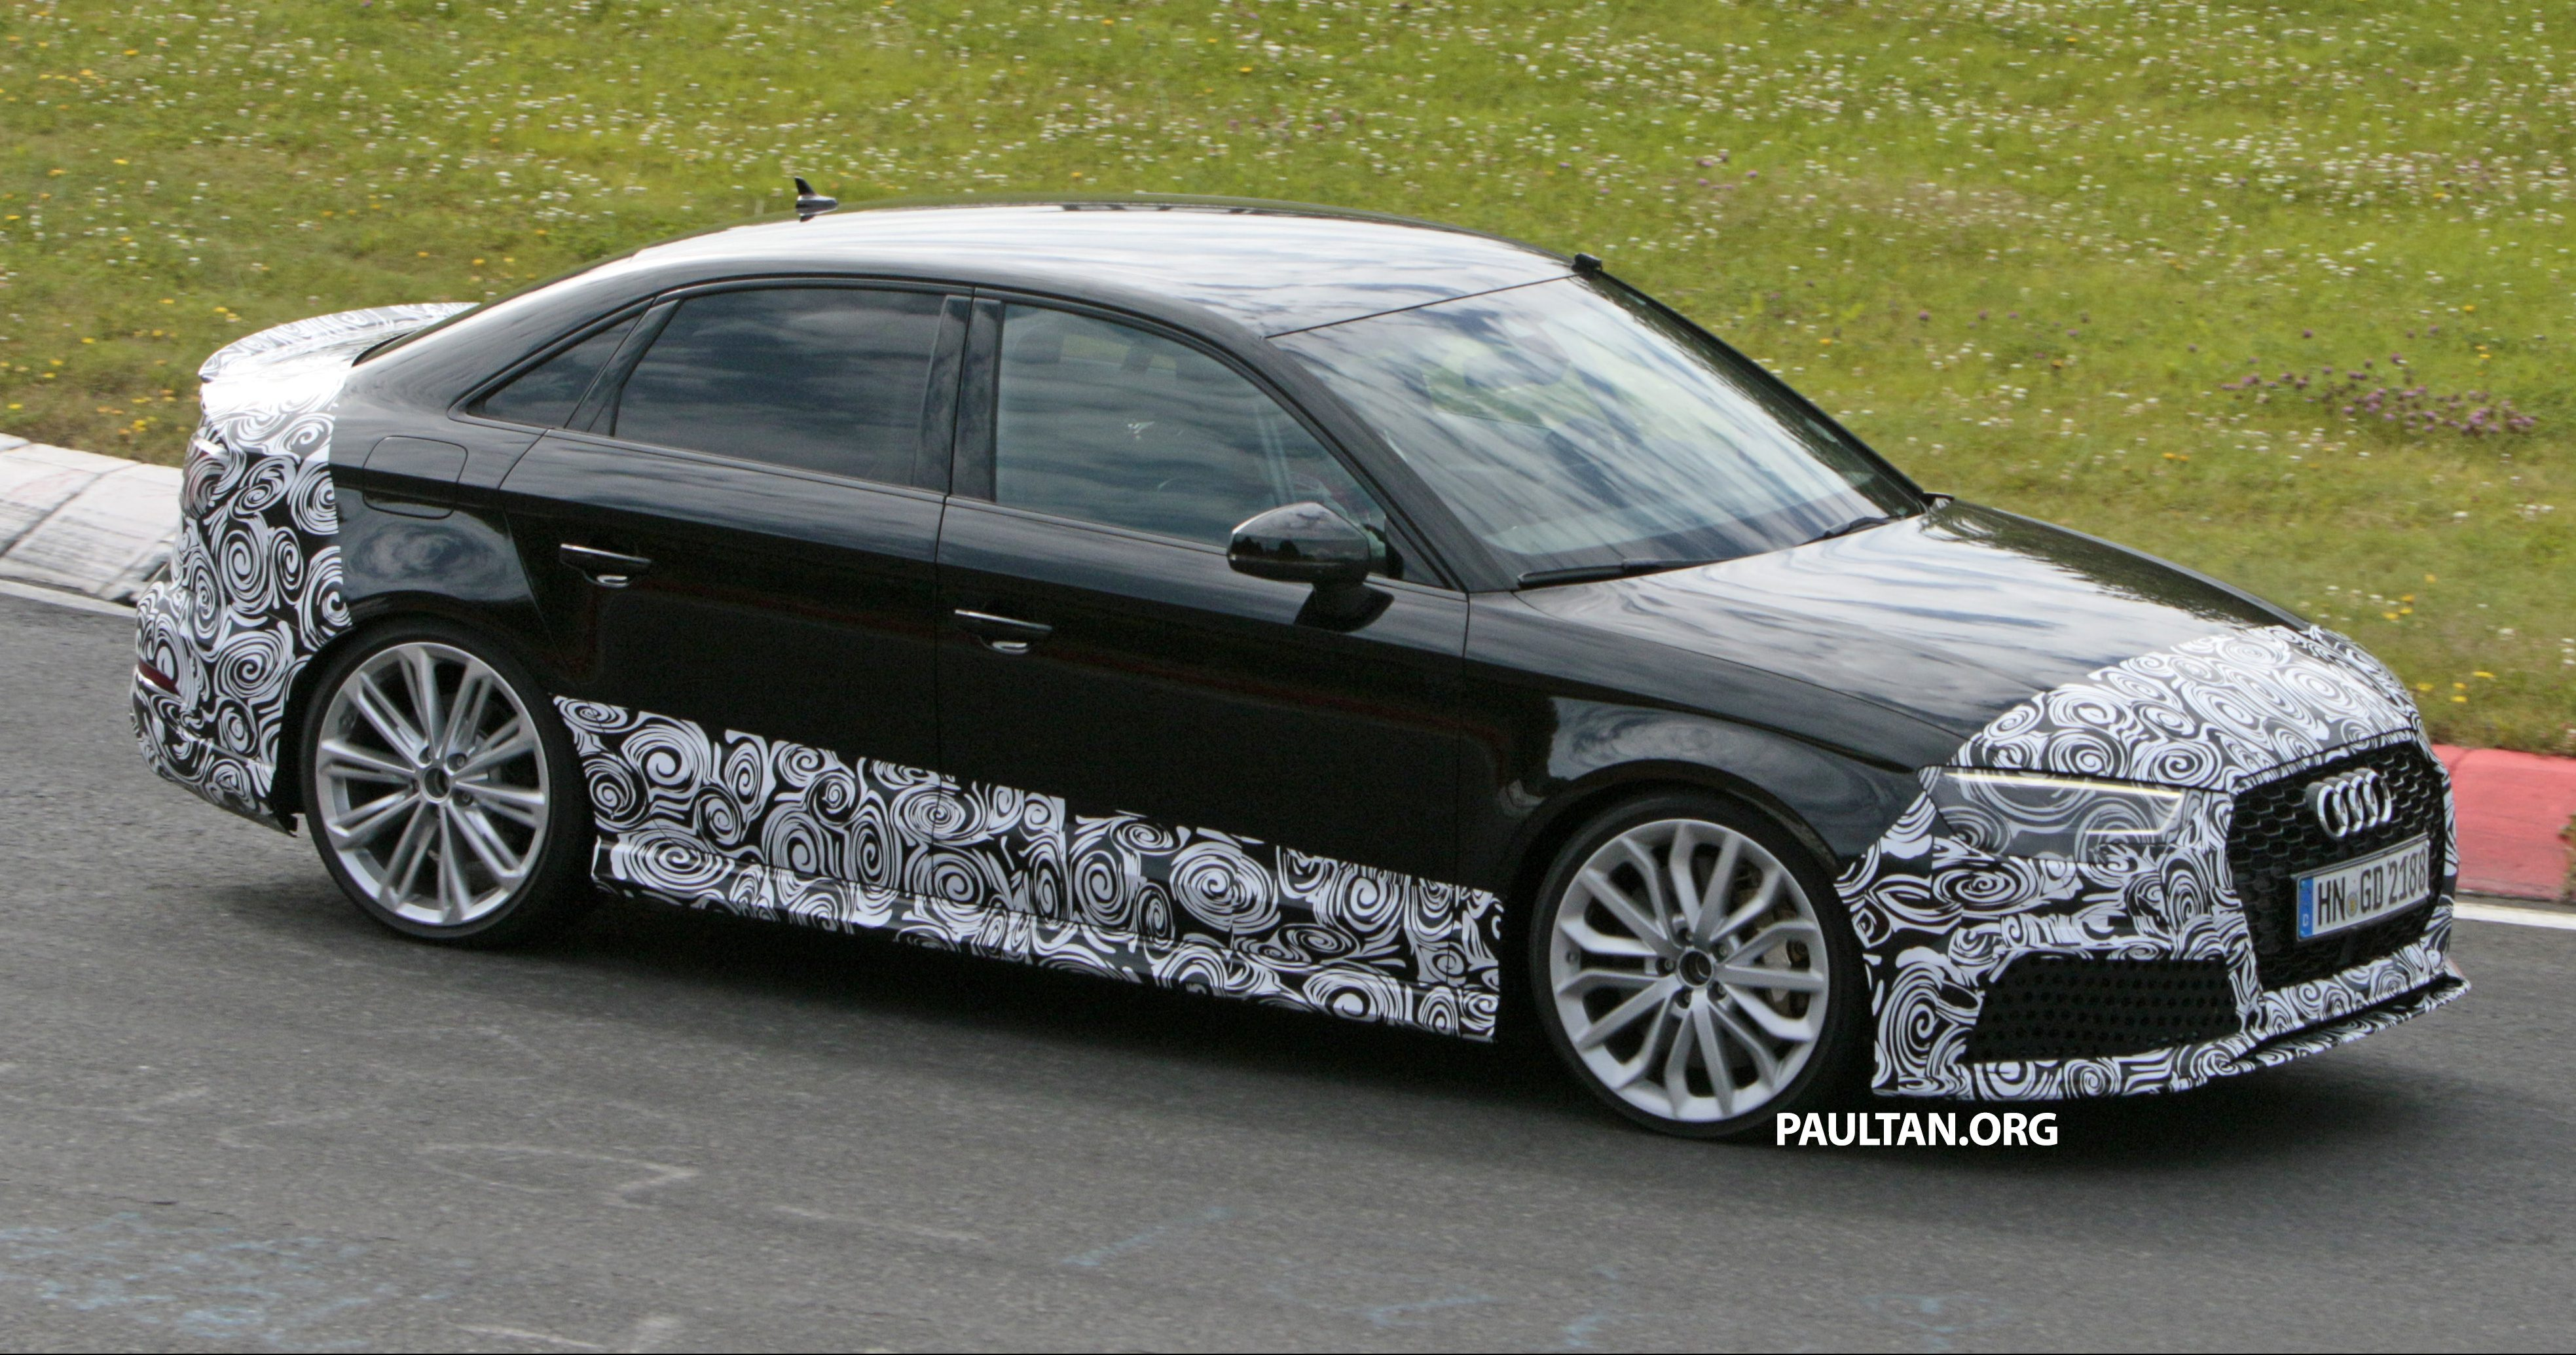 spyshots  new audi rs3 spotted testing on the track paul tan